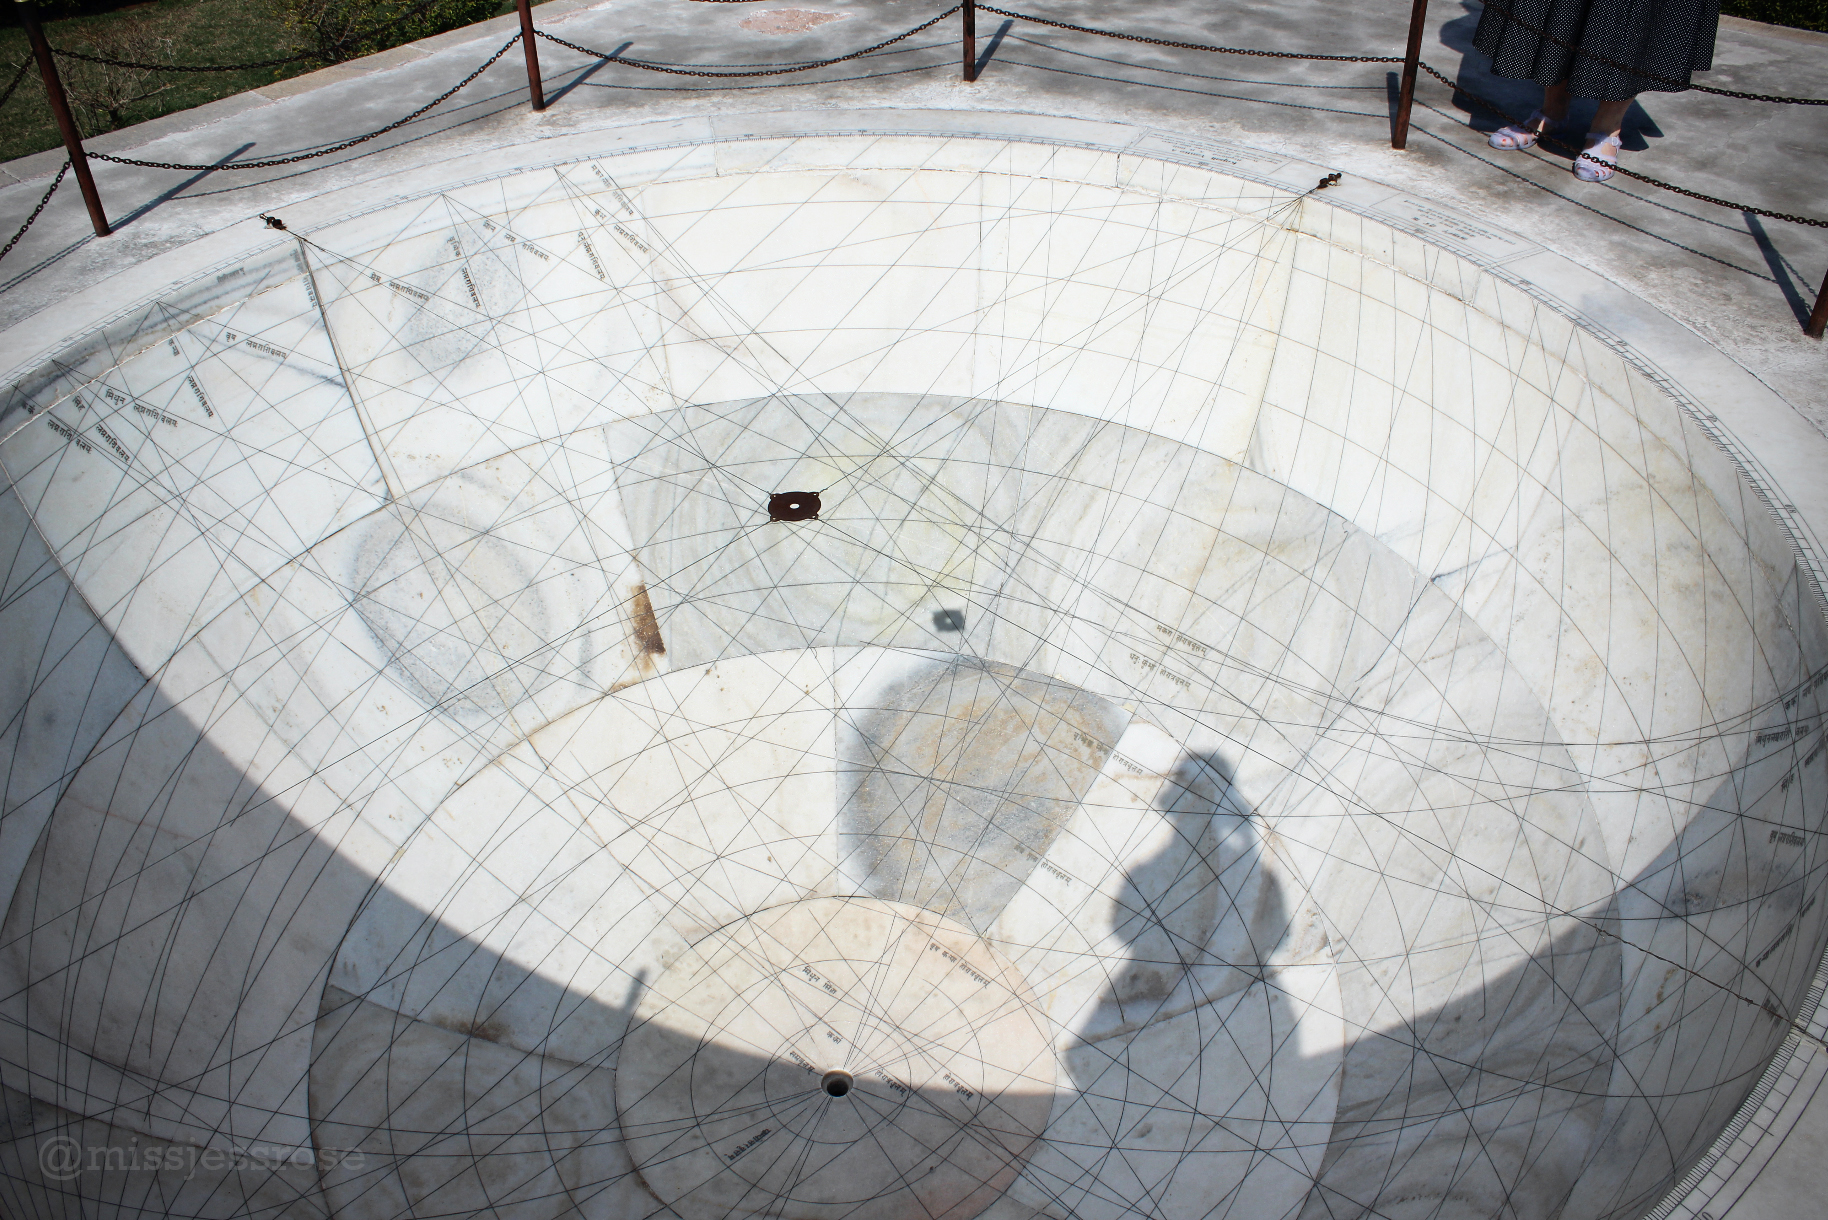 This giant bowl helps measure the position of celestial bodies in the sky.